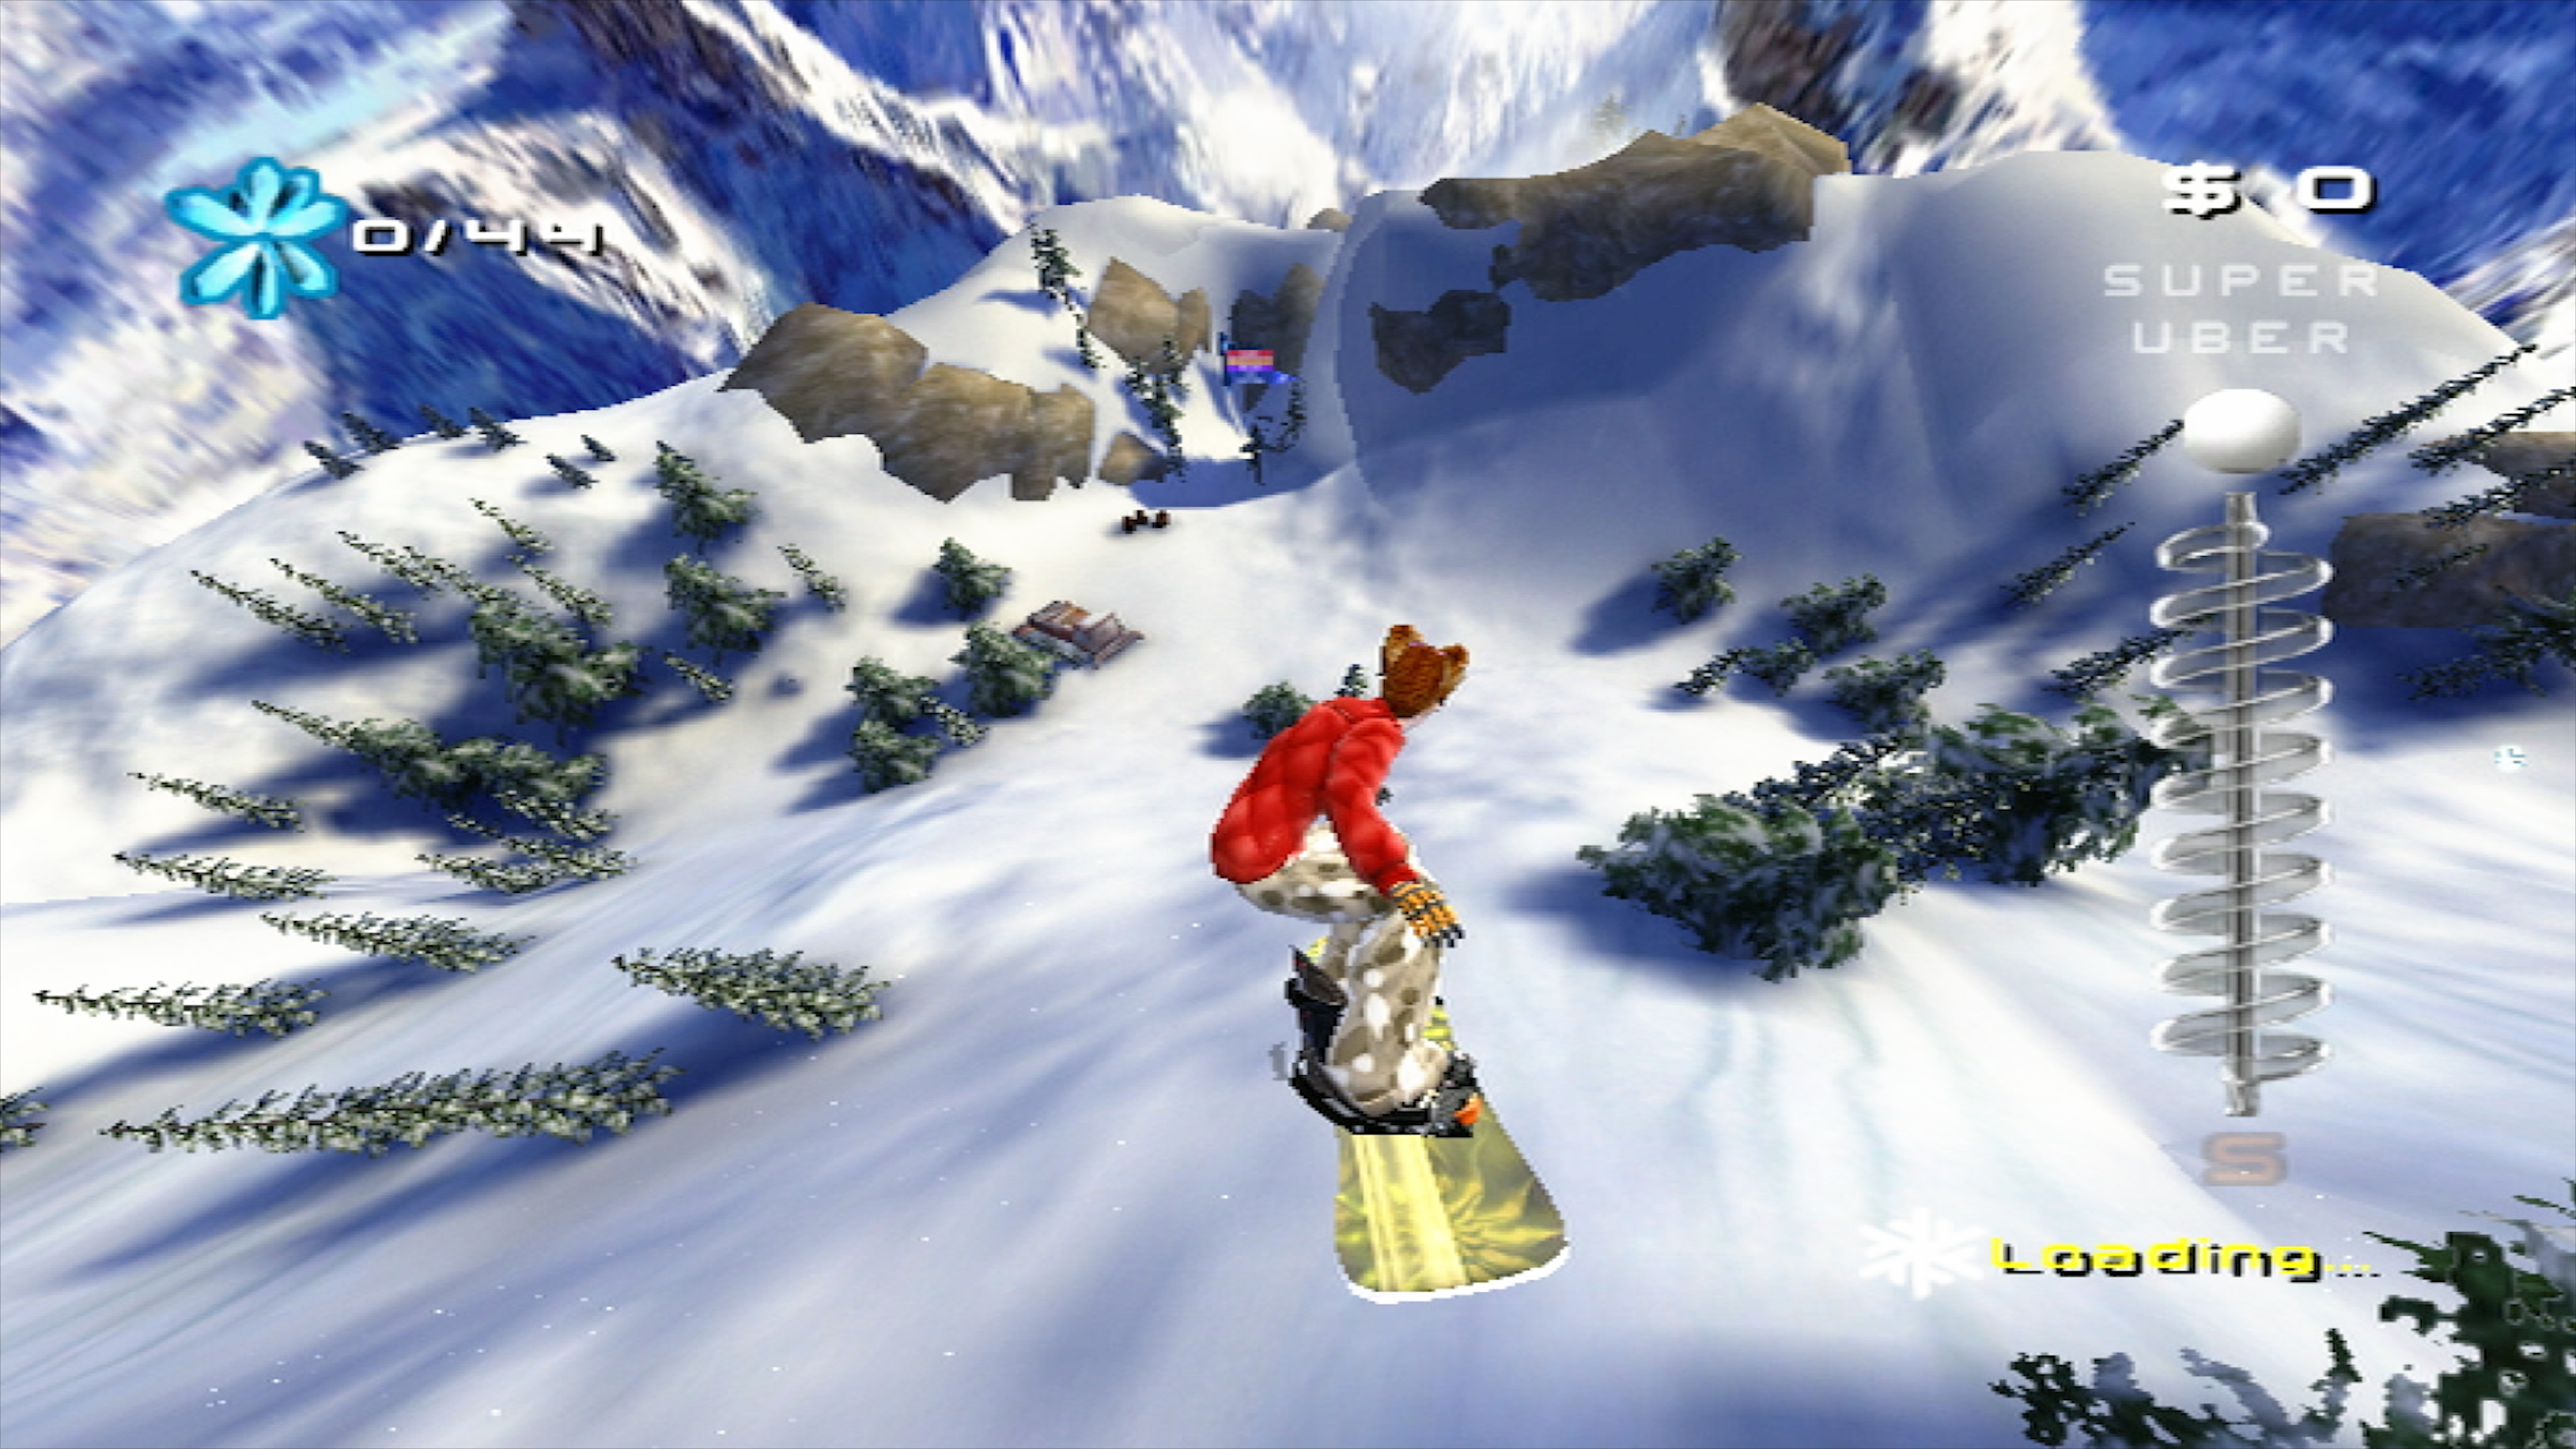 Ssx 3 Is A Retro Masterpiece And Its Even Better On Xbox One Resident Evil Revelations Ps4 Region English The Massive Increase In Resolution Immediately Apparent From Moment You First Start Game X Now Possible To Read Course